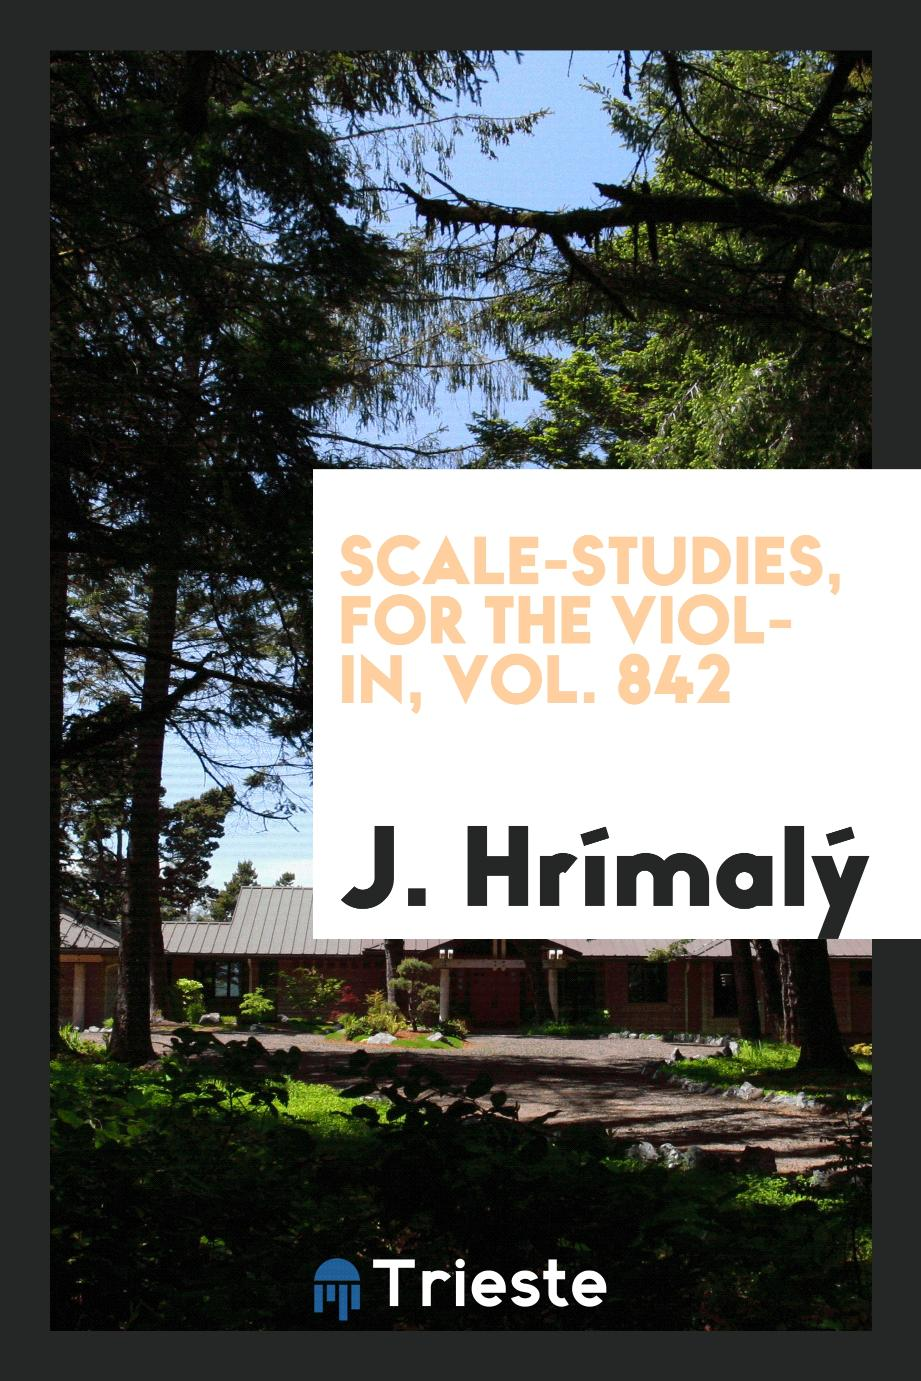 Scale-studies, for the violin, Vol. 842